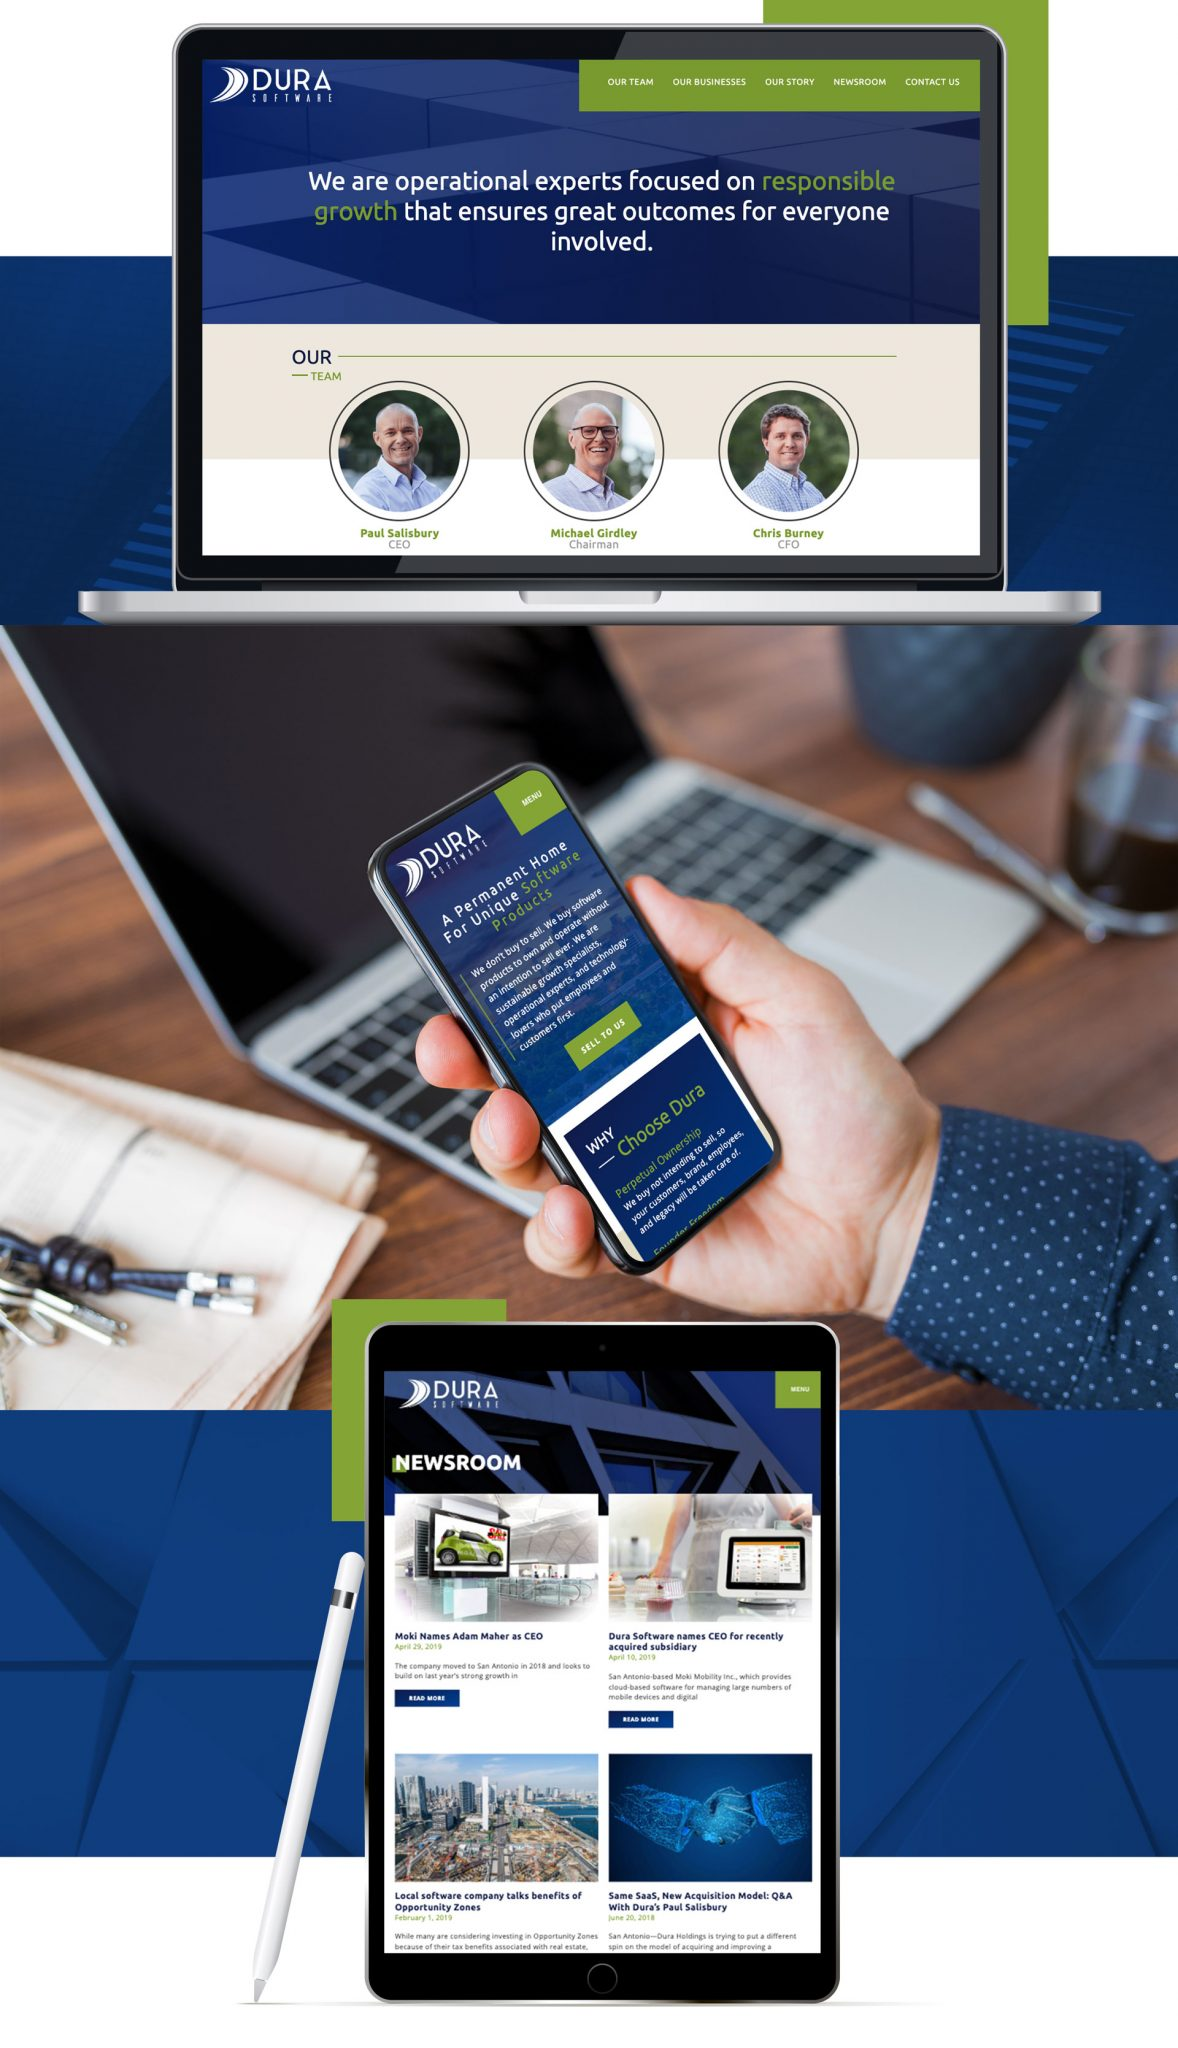 Dura Website Mockup | Tribu Digital Marketing